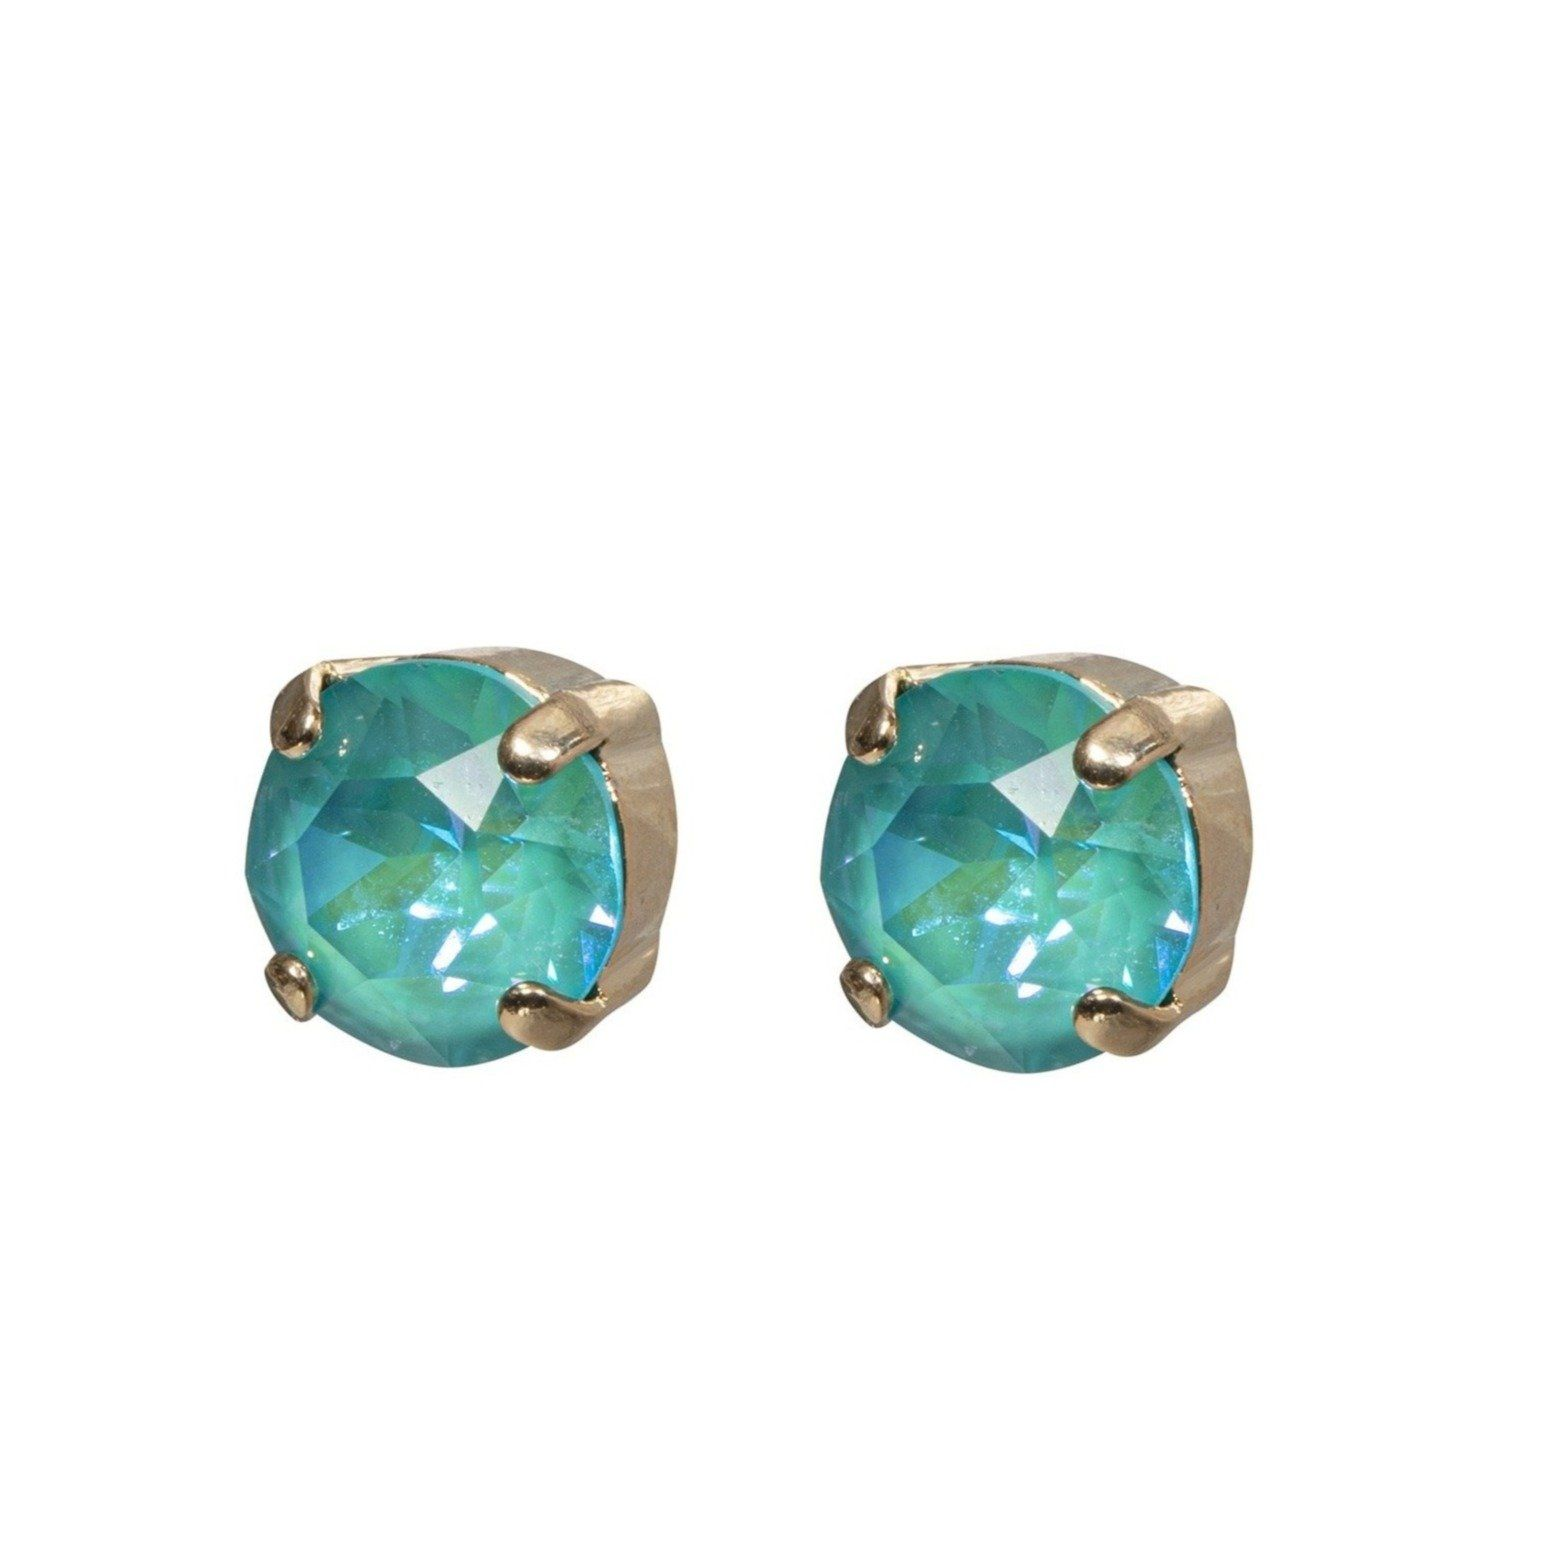 Splash Earrings - Turquoise